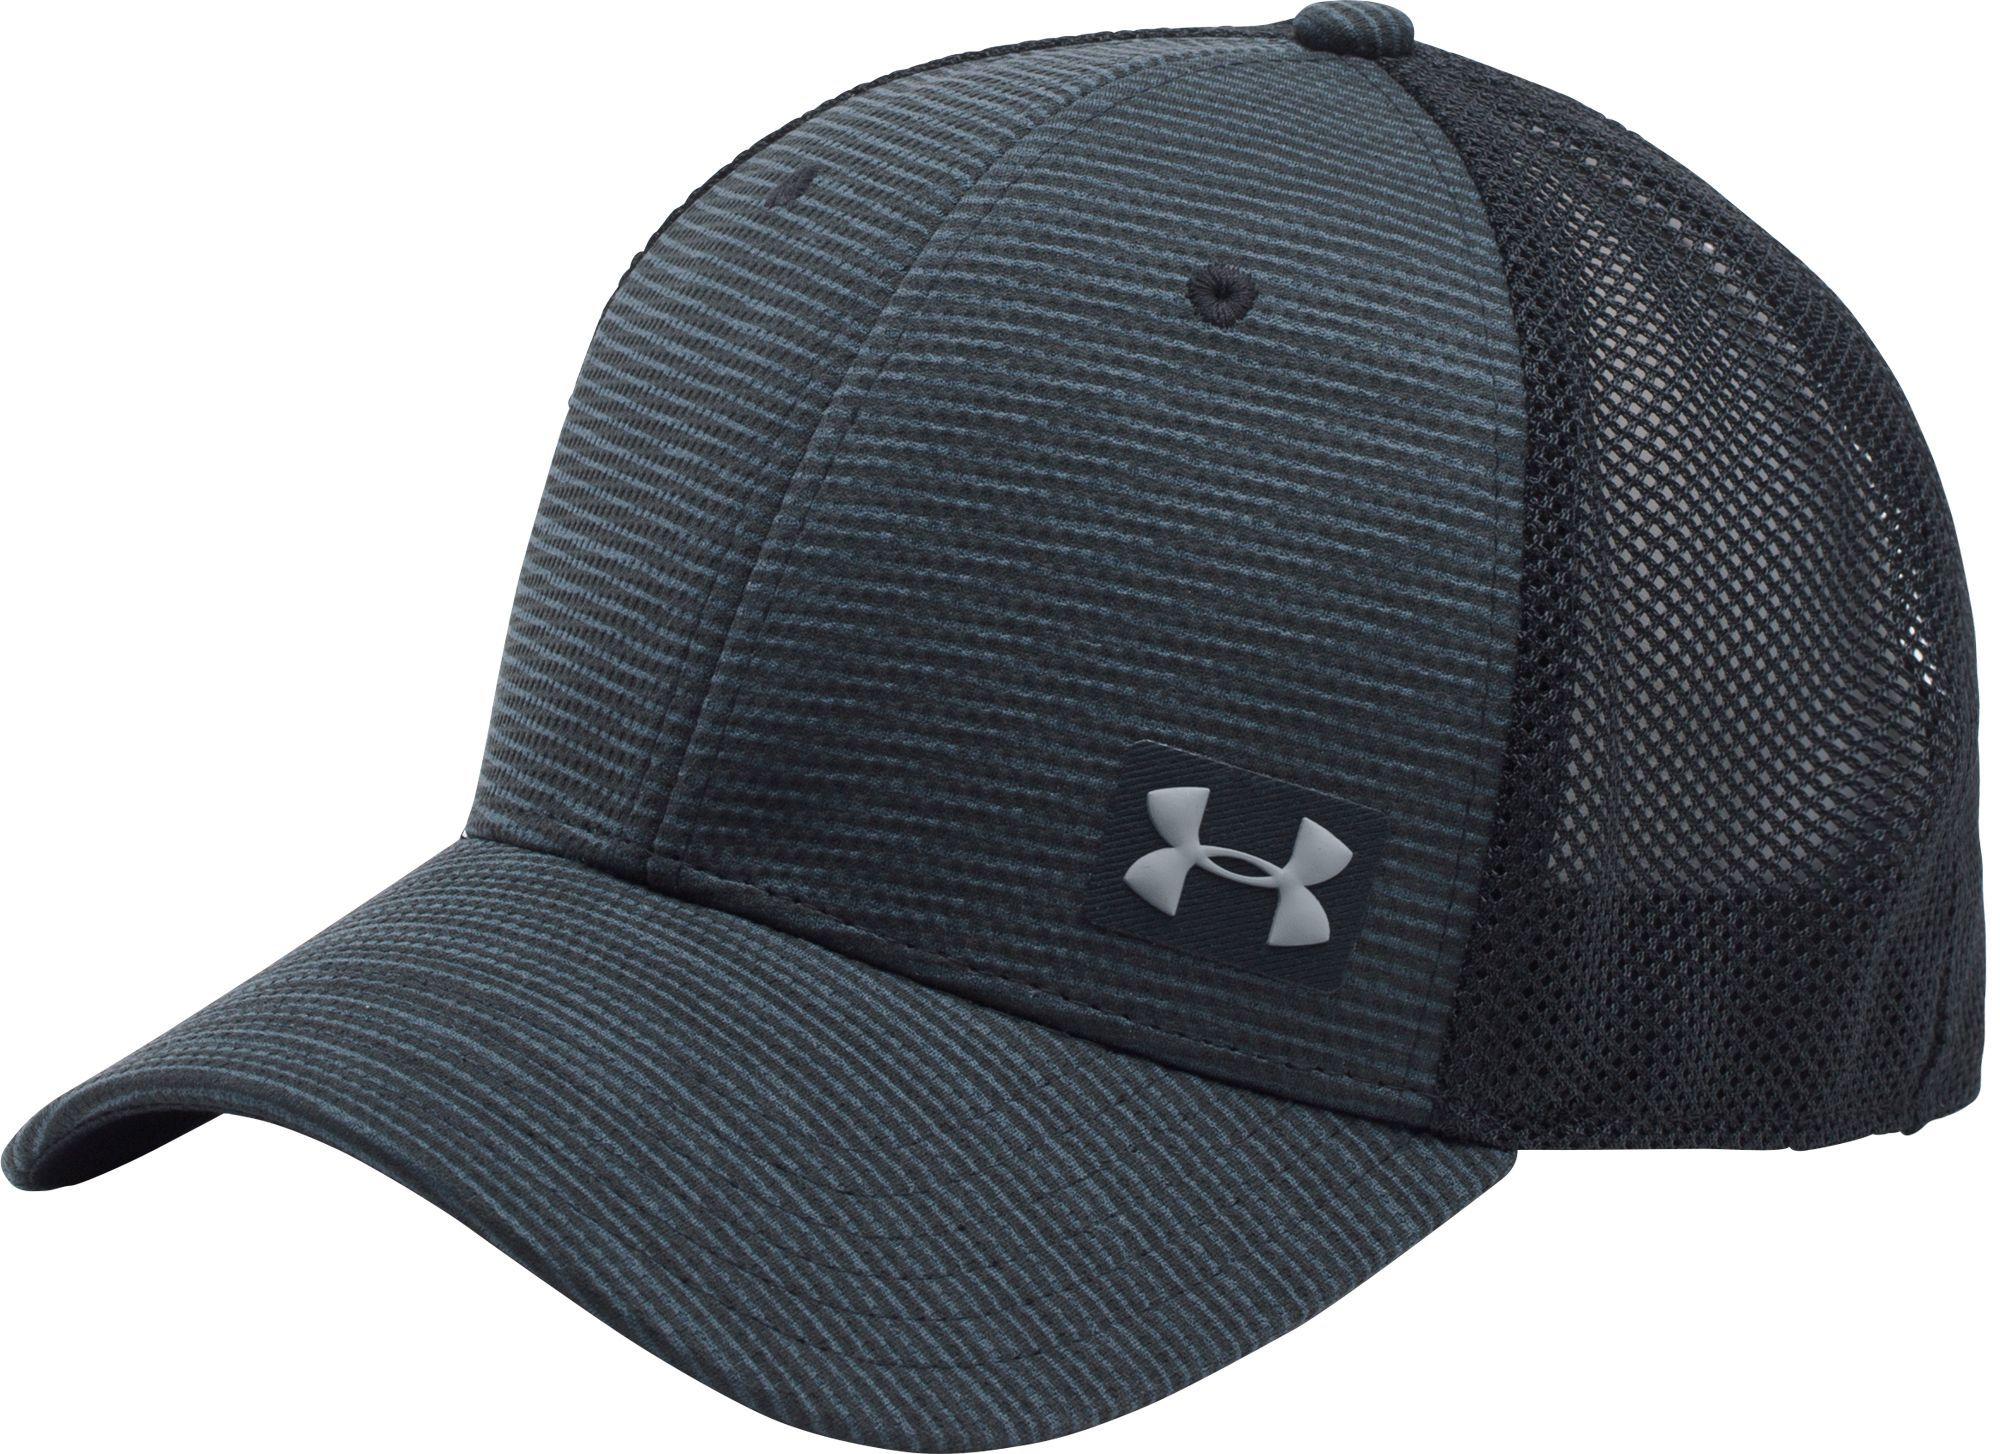 127df5a4b74 Under Armour Men s Blitzing Trucker Hat